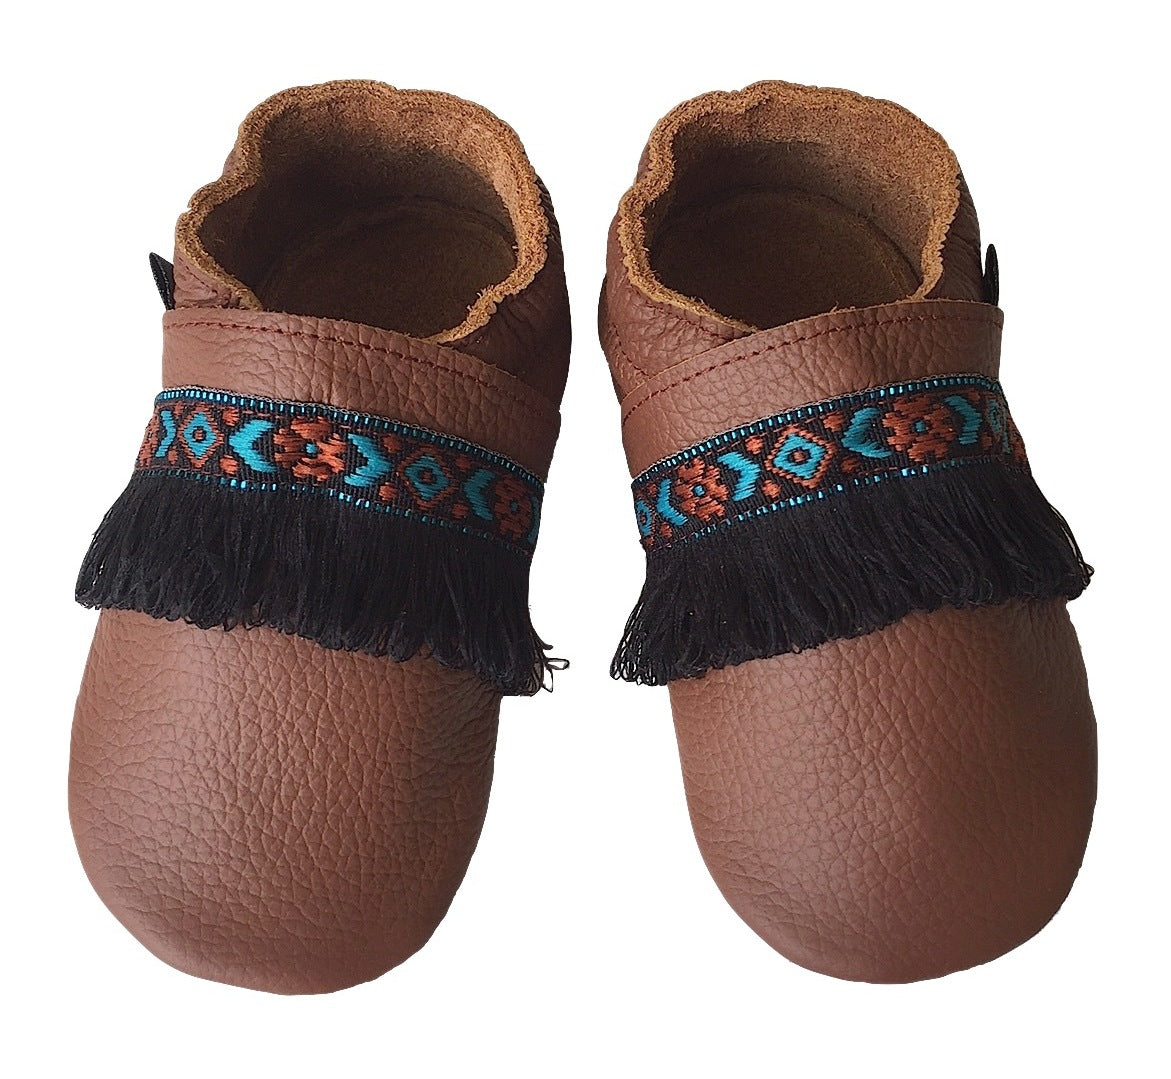 Brown leather boho baby shoes